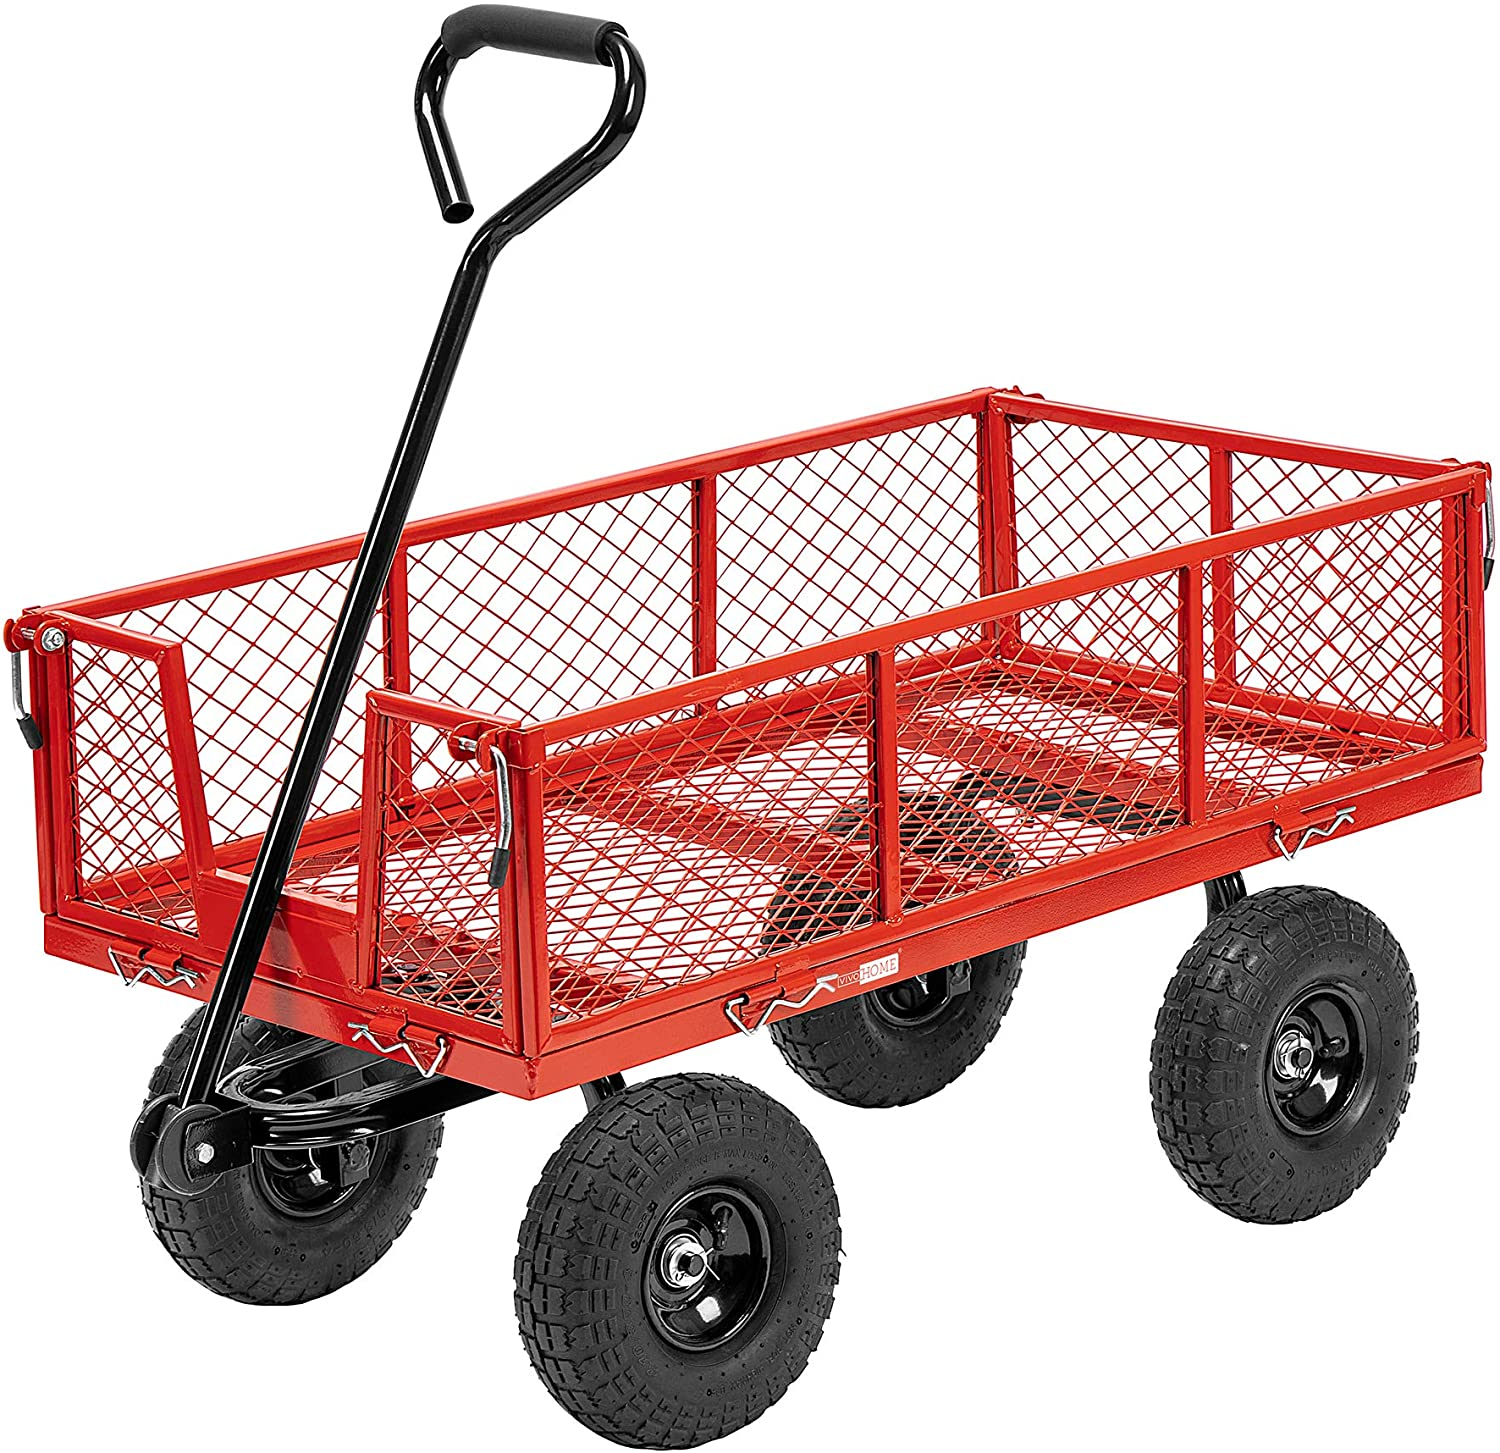 VIVOHOME Heavy Duty 1100 Lbs Capacity Mesh Steel Garden Cart Folding Utility Wagon with Removable Sides and 10 Inch Wheels (Red)